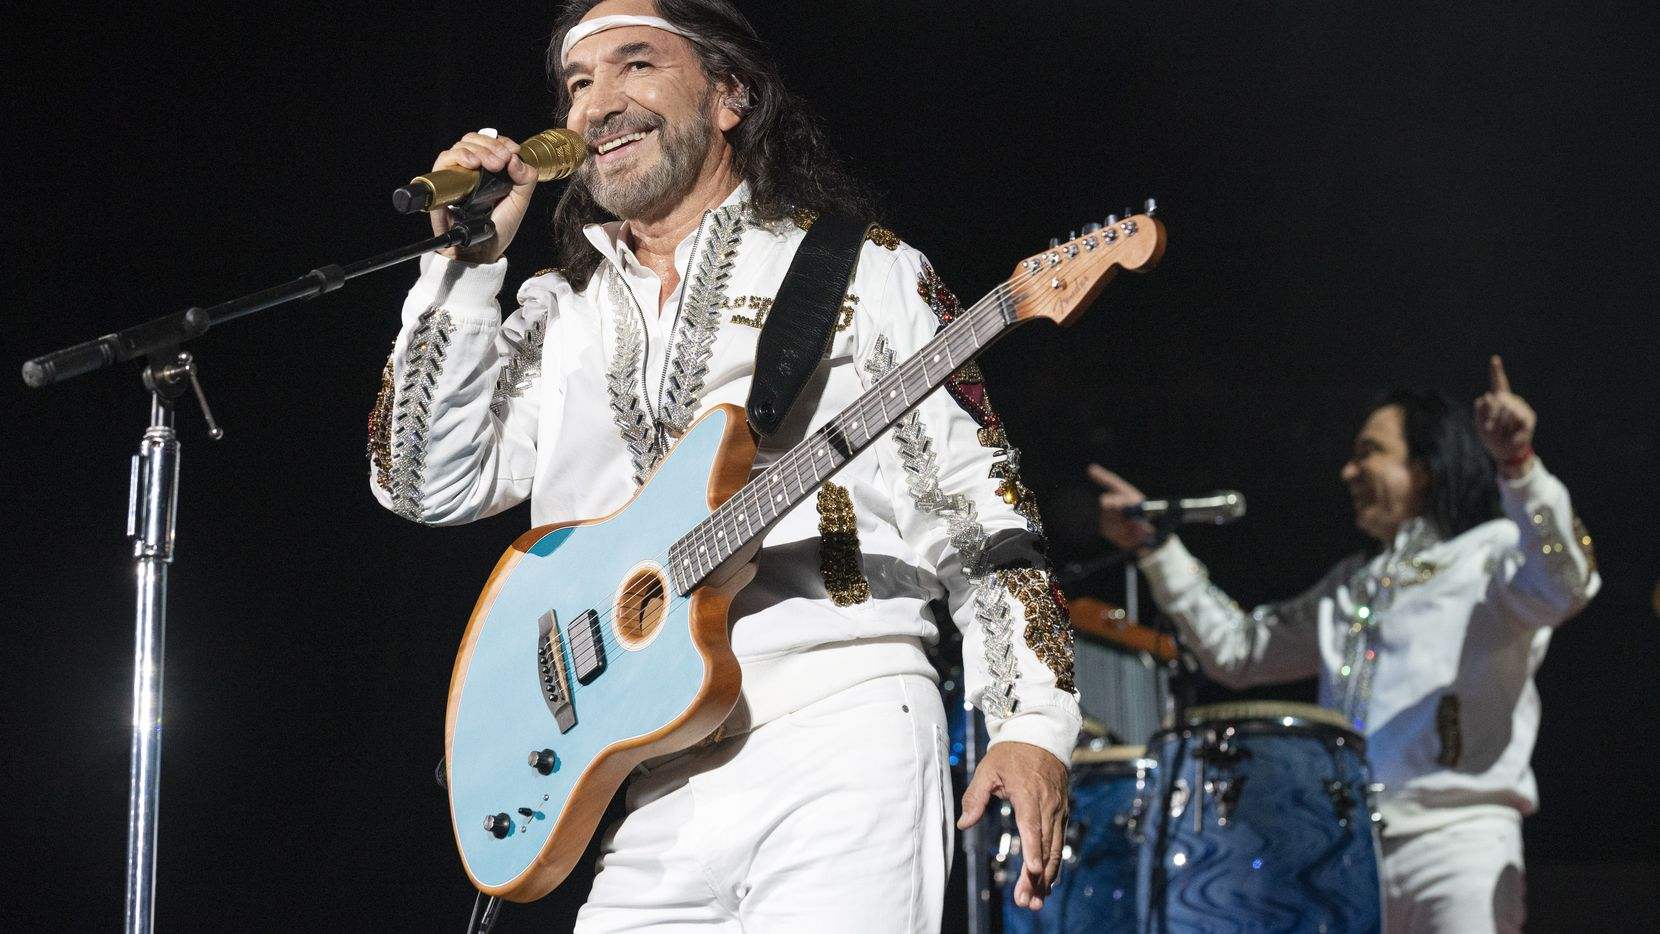 Los Bukis performed in concert at the AT&T Stadium in Arlington on Wednesday.